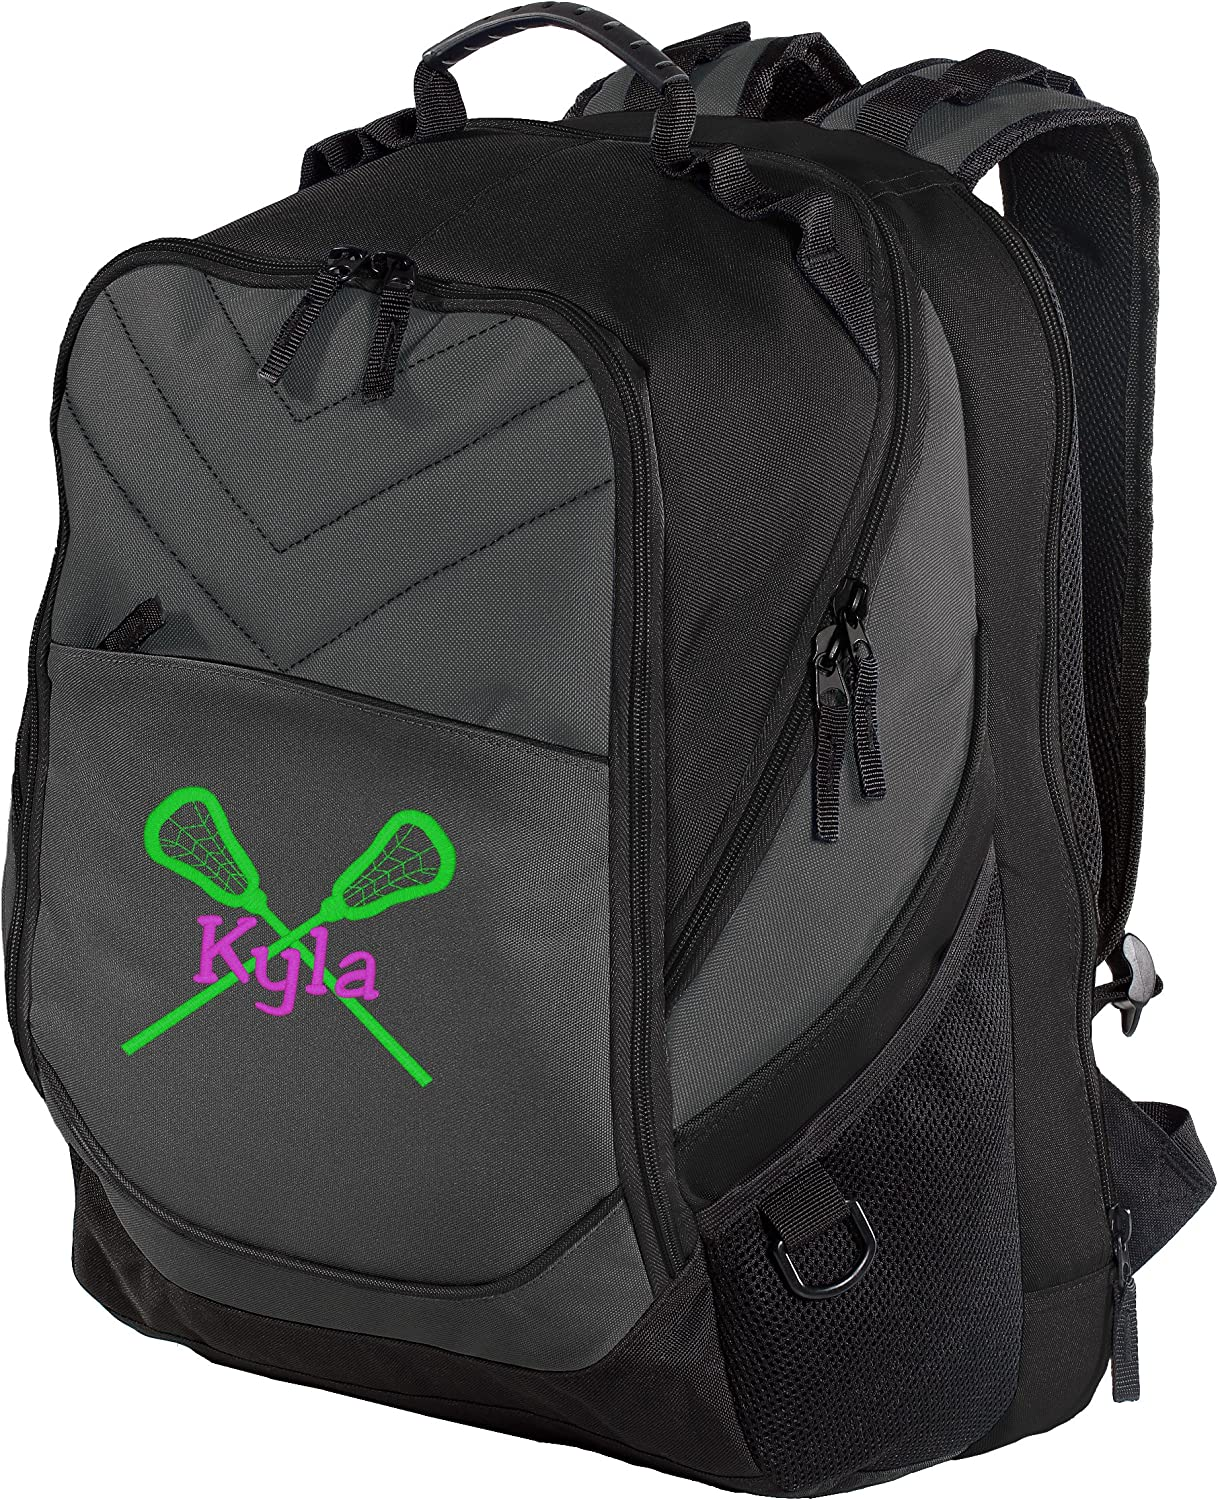 Shoulder Backpack with Customizable Embroidered Monogram Design Personalized Lacrosse Book Bag with Custom Text Dark Charcoal//Black